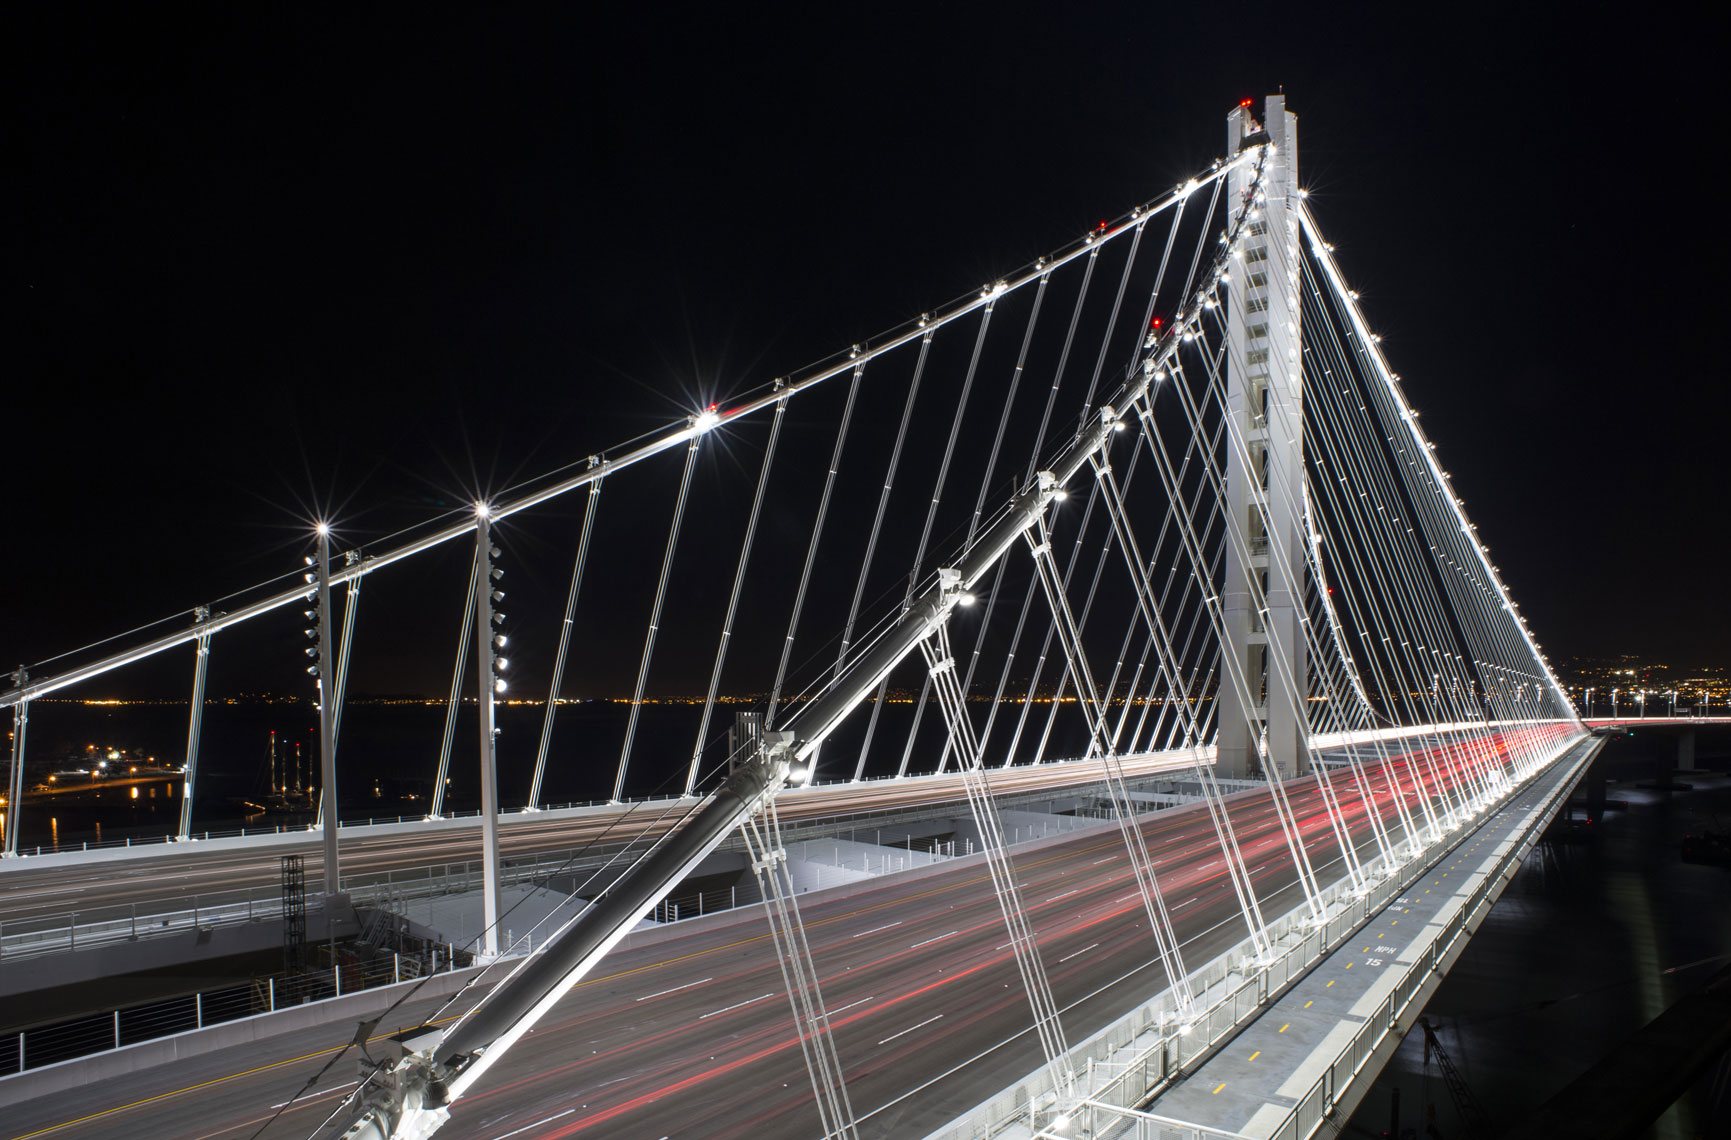 The new Bay Bridge shortly after completion.